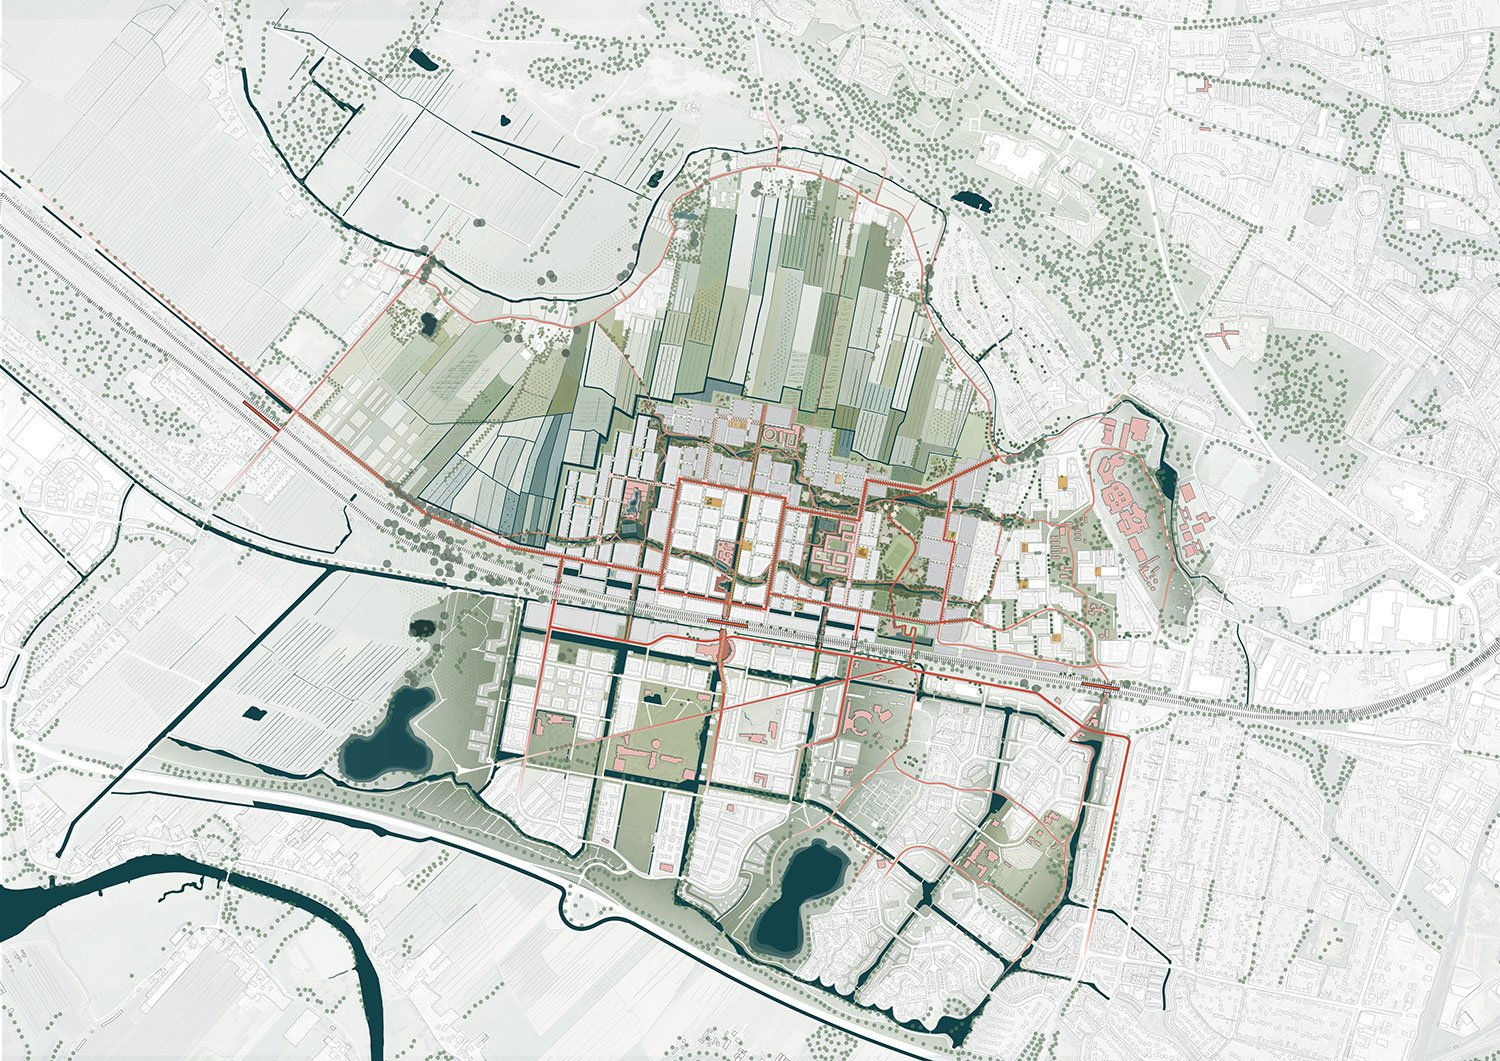 The Connected City - Masterplan 1-5000 © ADEPT KARRES+BRANDS}